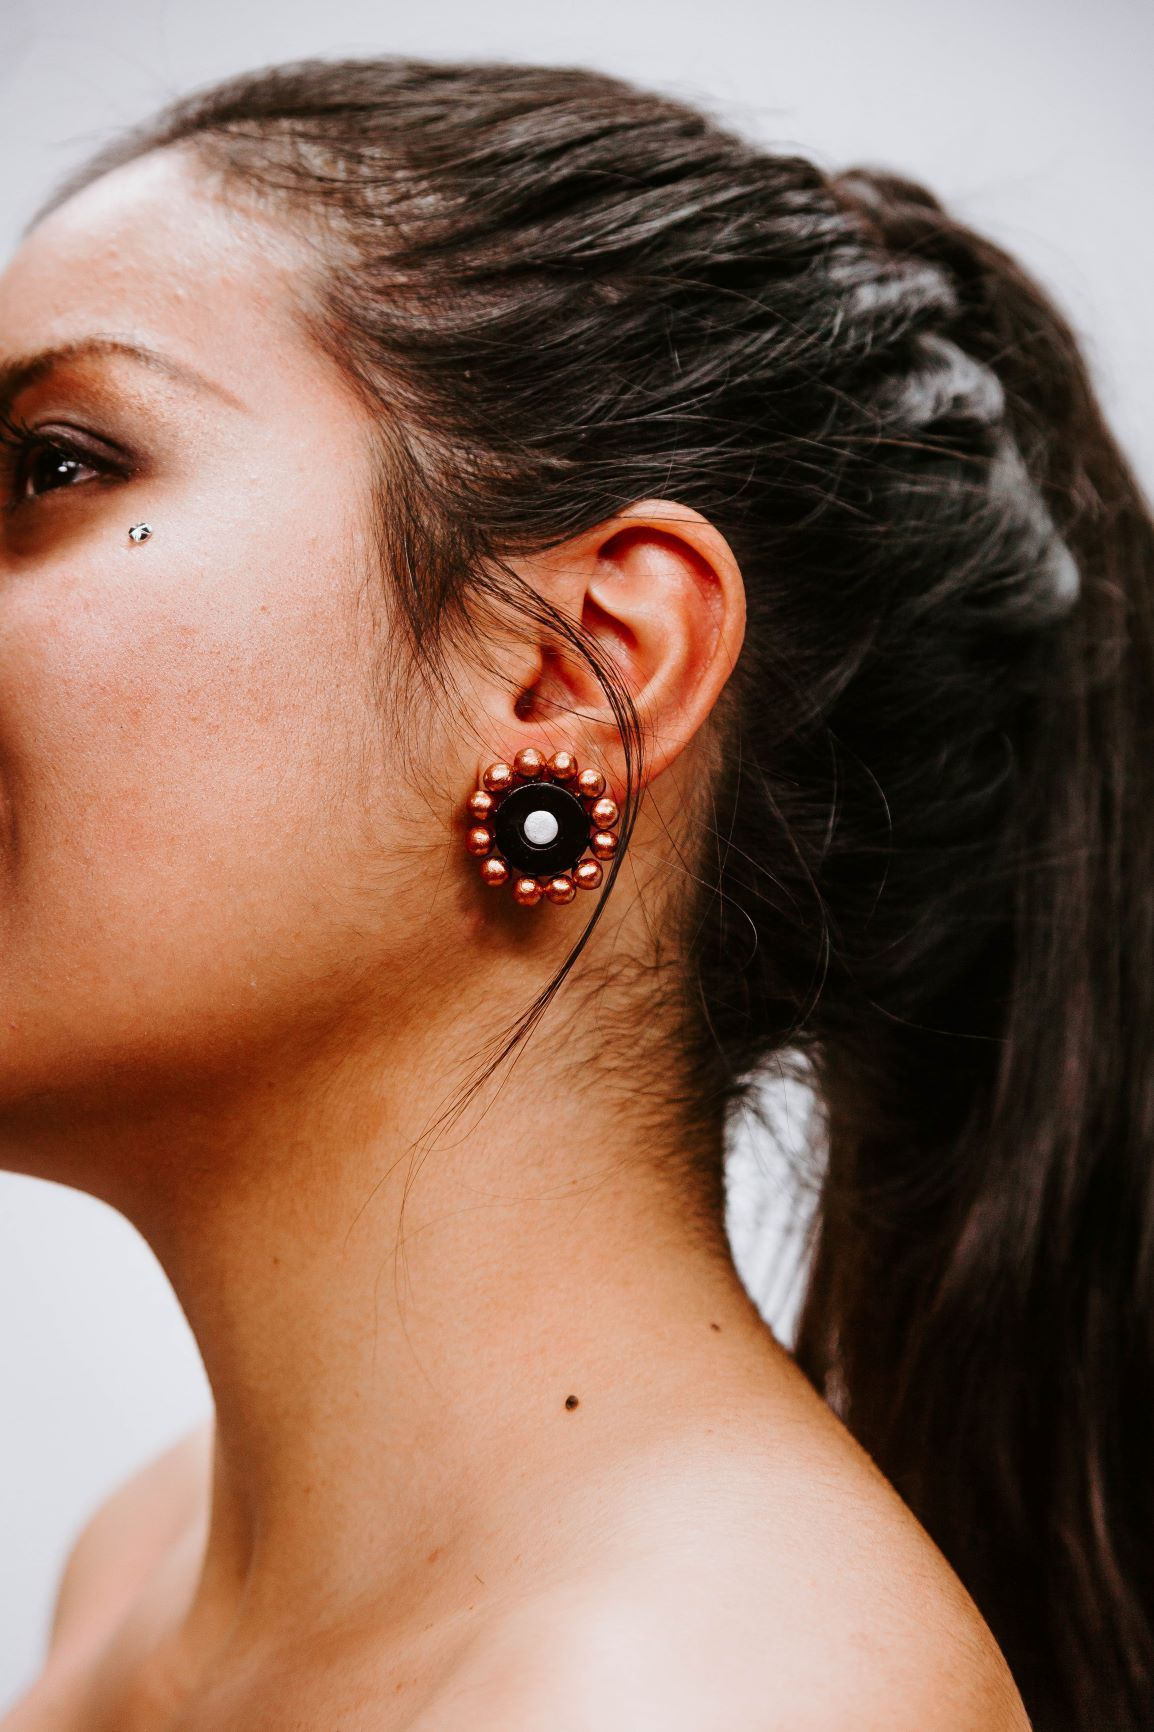 Sunflower Black - Bronze - Metal - Boucles d'oreilles - Azaadi, la mode responsable accessible